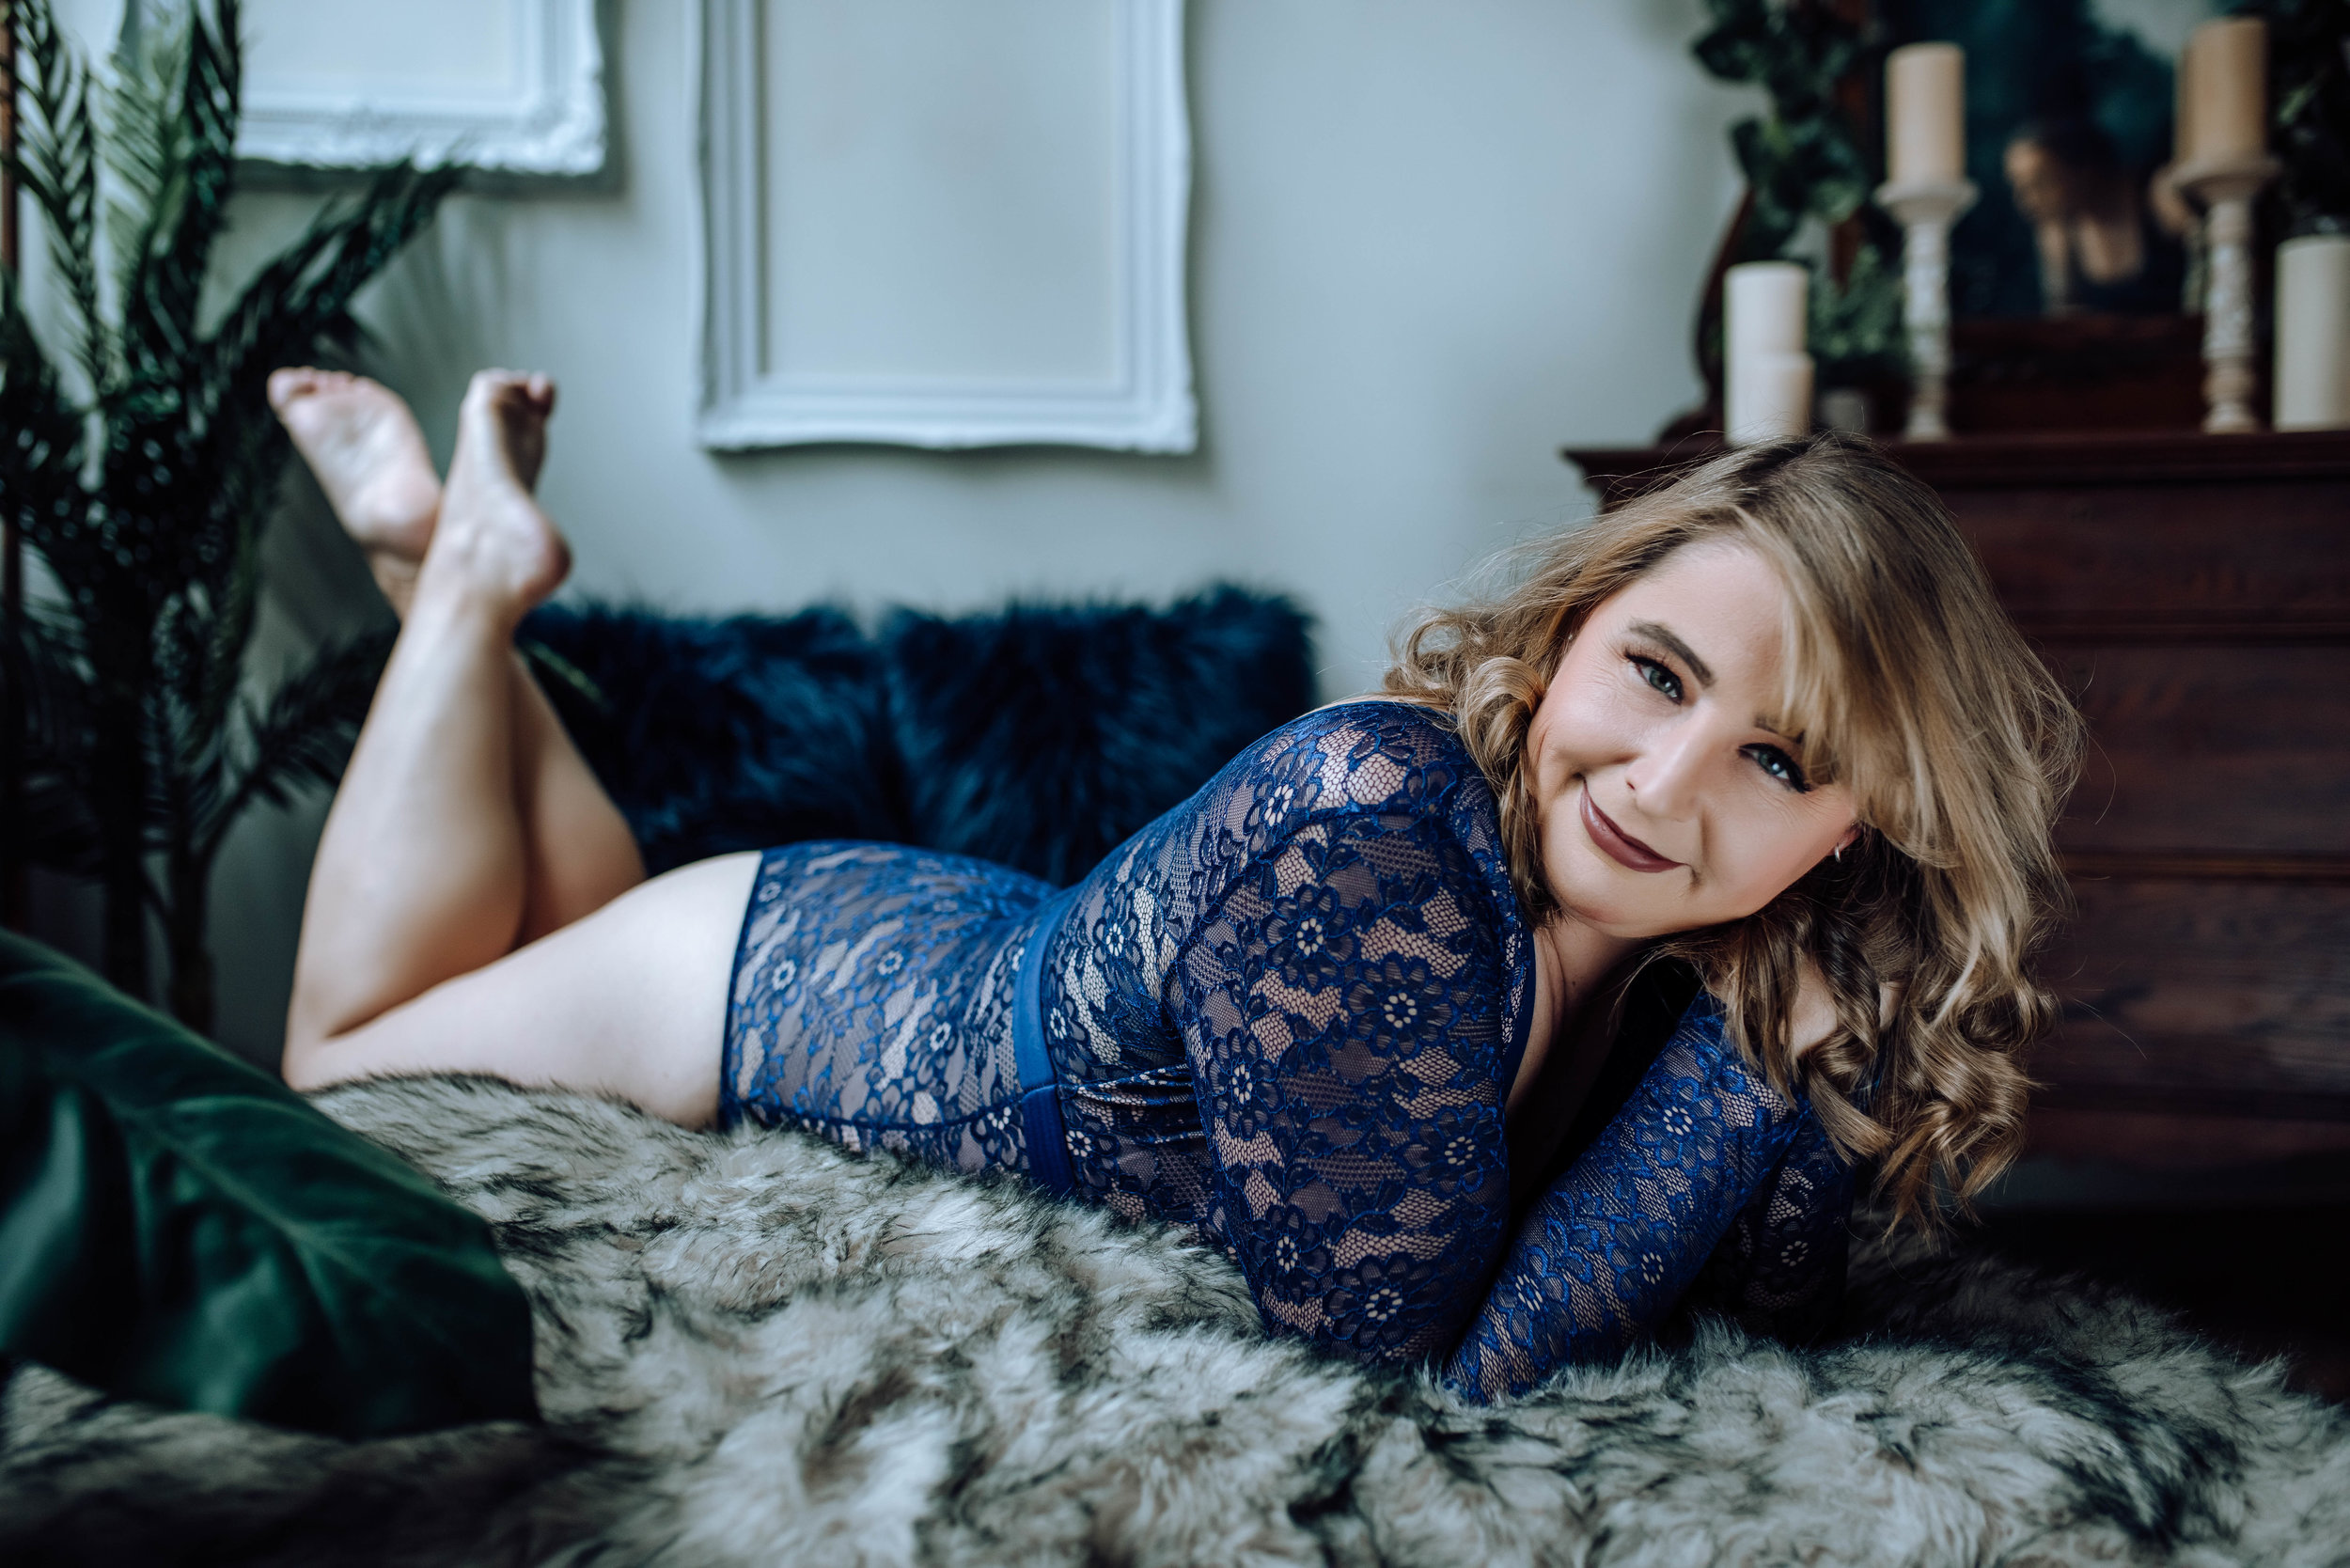 boudoir_philly_berks_county_pa_photographer-4.jpg